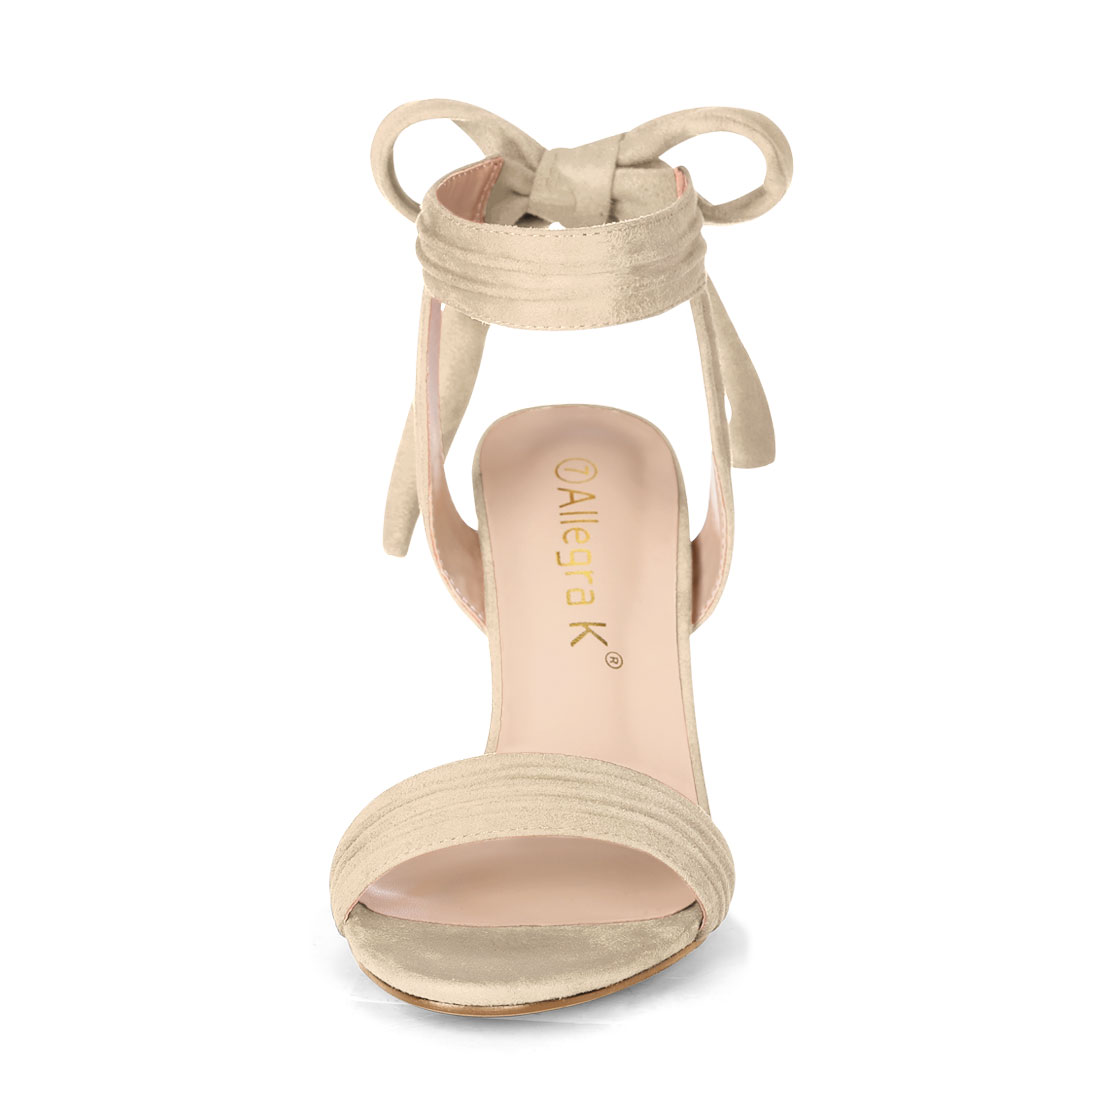 Unique Bargains Women's Ankle Tie Open Toe Block Heel Sandals Beige (Size 9.5) - image 2 of 7